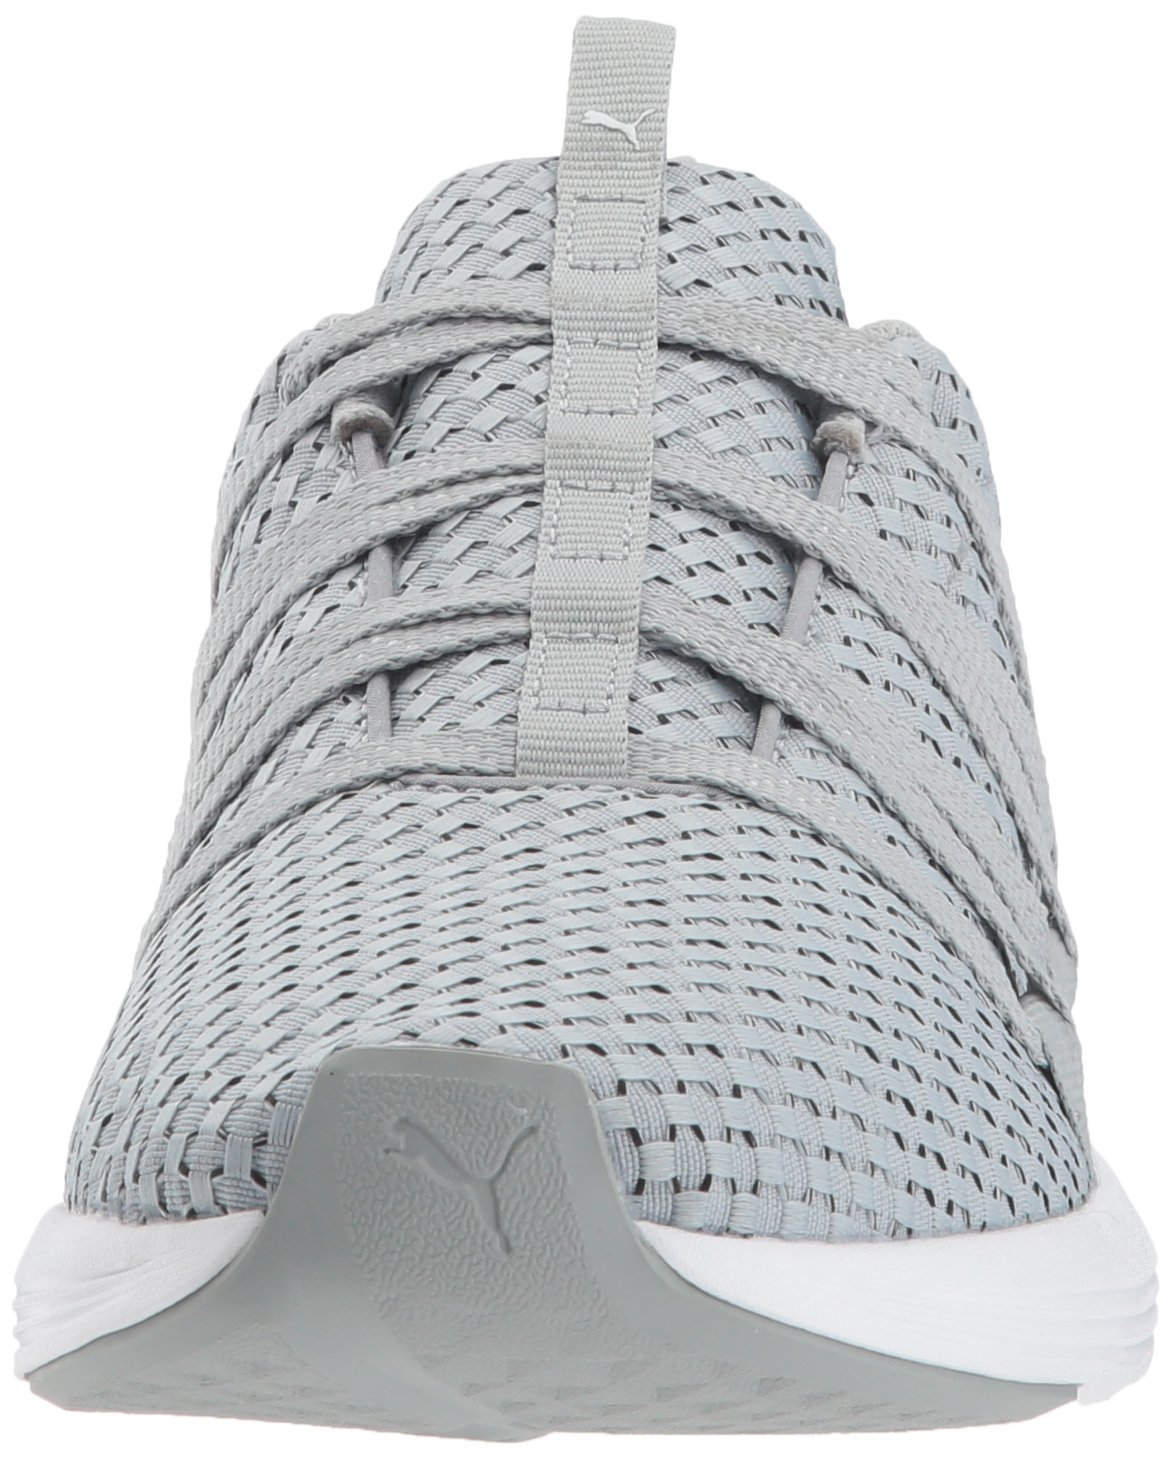 PUMA Women's Prowl B(M) Alt Weave Wn Sneaker B072KNNGNB 6.5 B(M) Prowl US|Quarry-puma White 5527d1